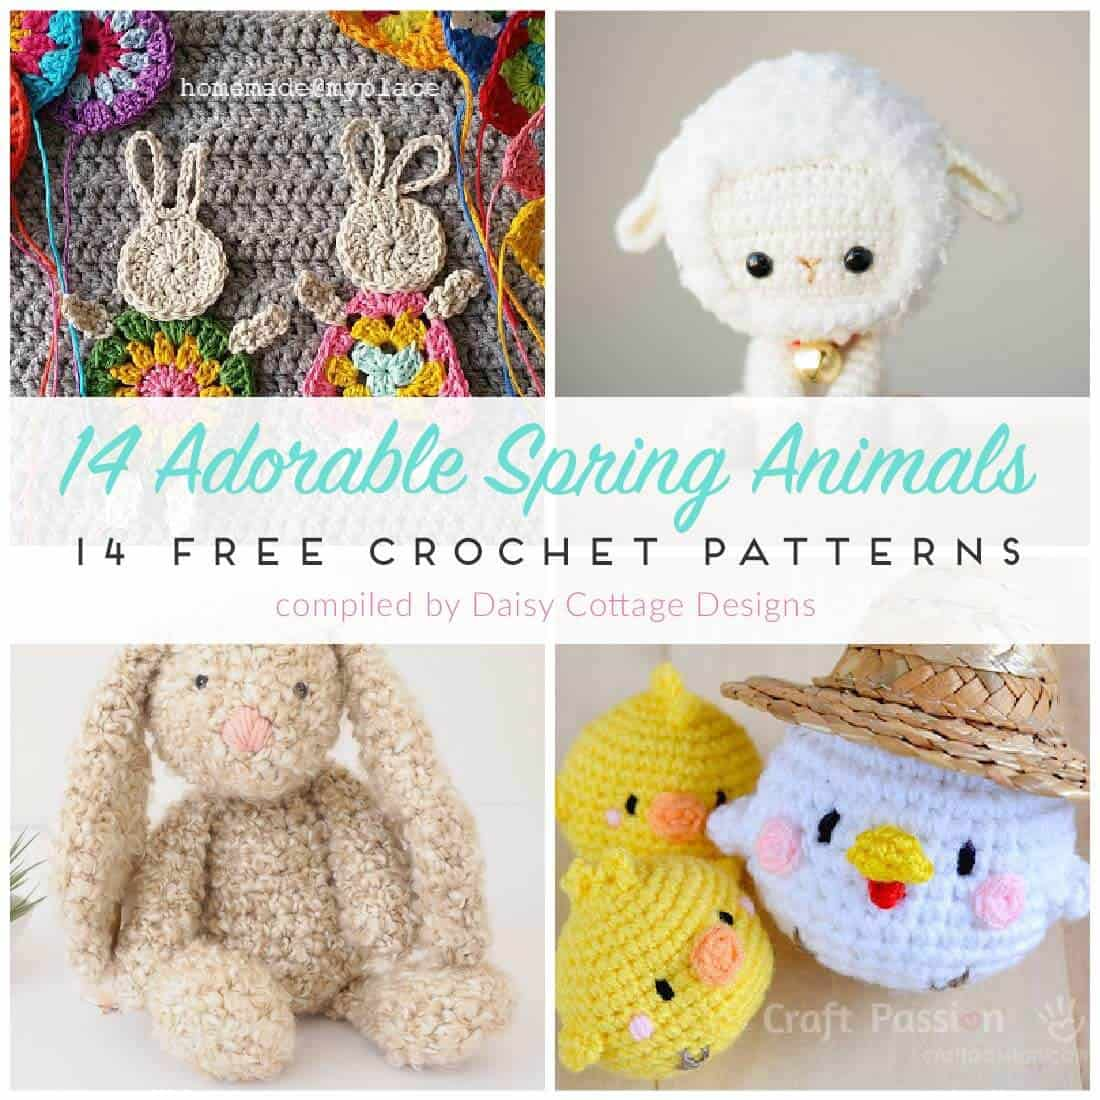 Free Crochet Patterns for Spring - Daisy Cottage Designs